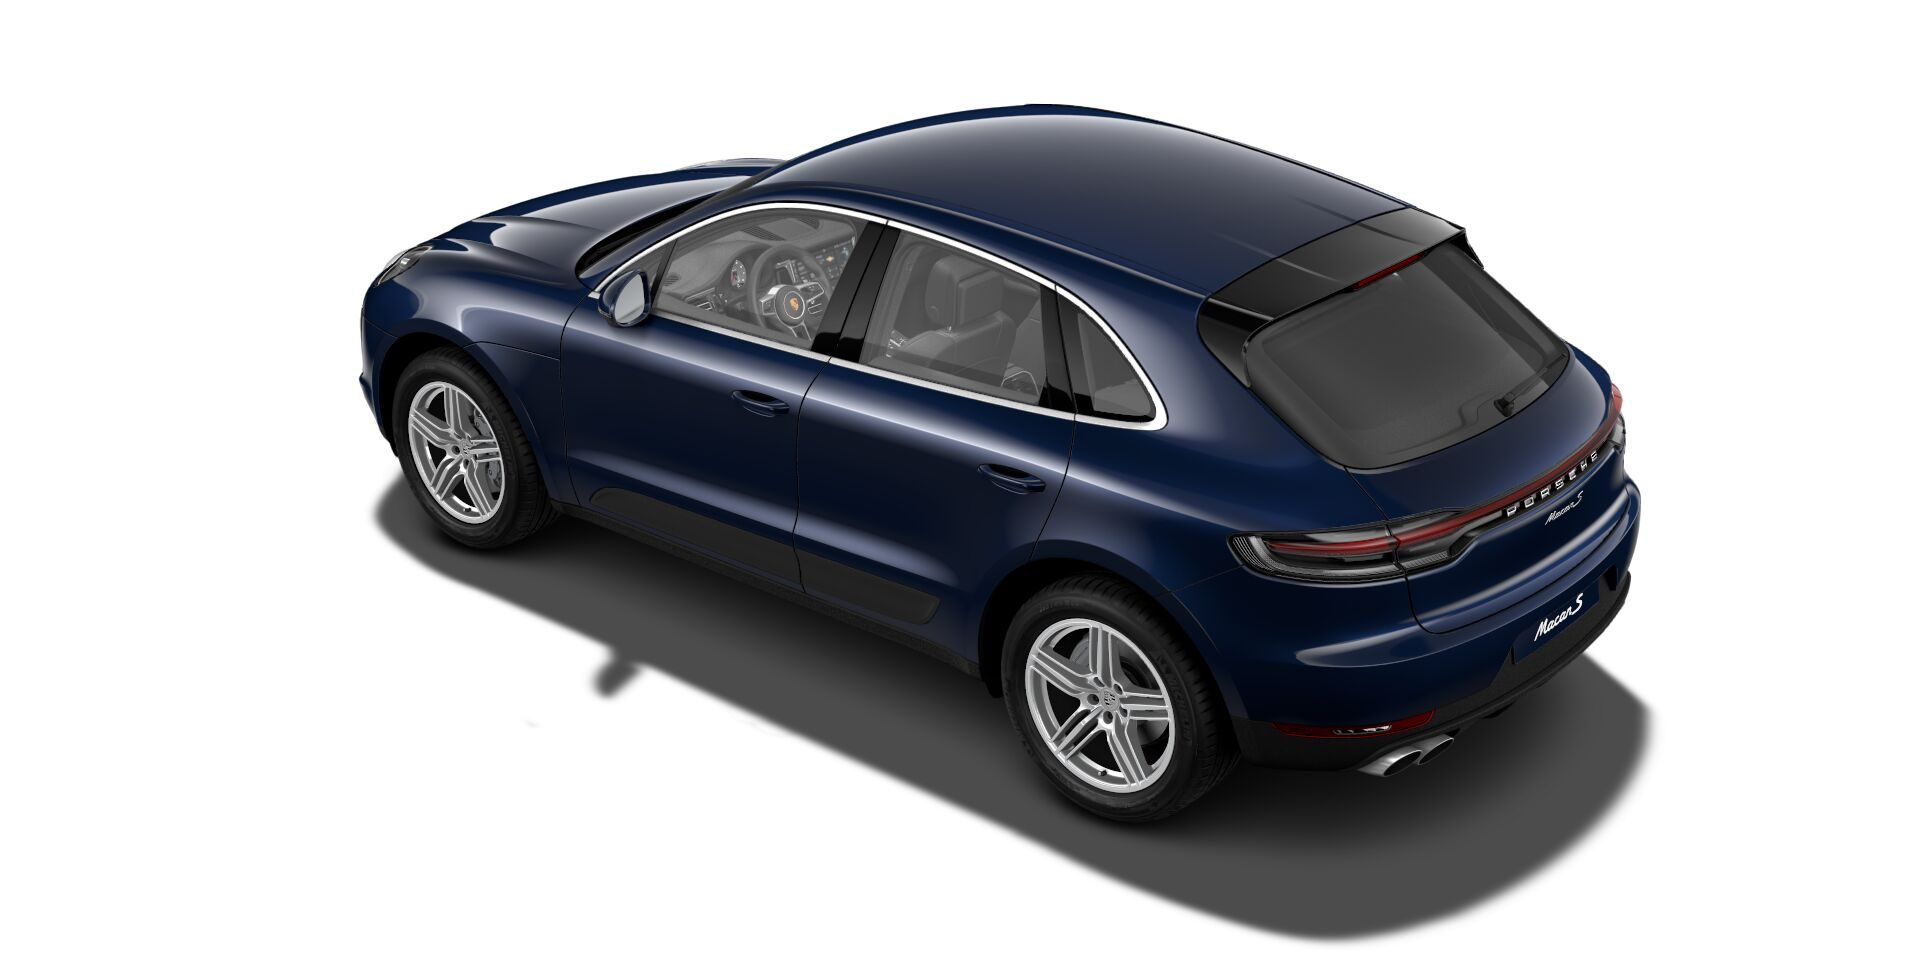 2019 Porsche Macan S Night Blue Metallic